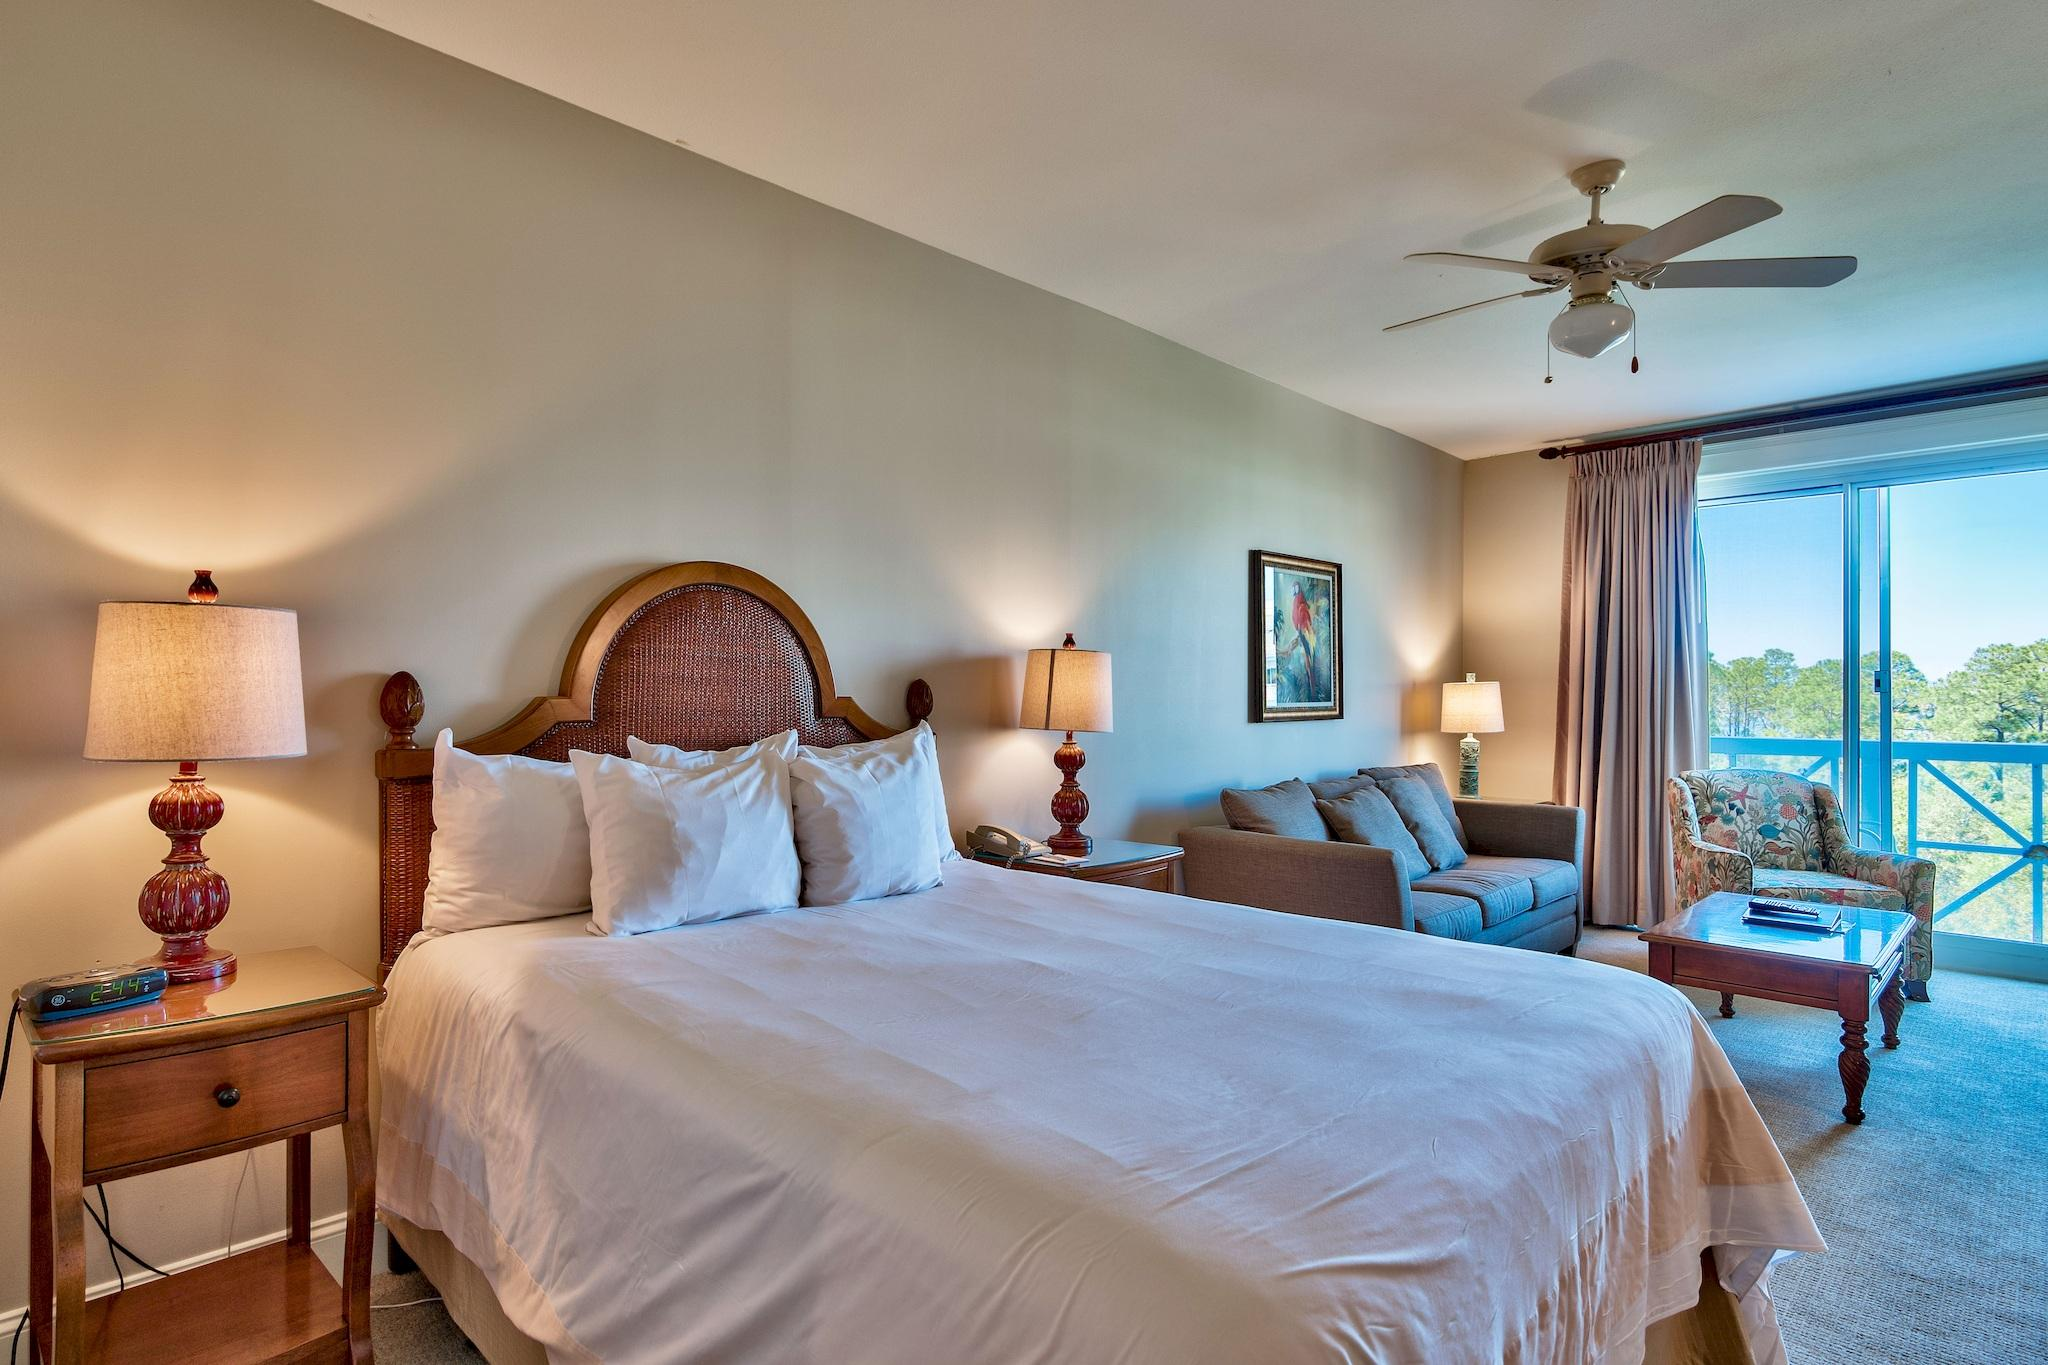 """Rare bay-facing studio located on the 4th floor, overlooking the pool and garden areas in the Grand Sandestin. ''A'' rated on the Sandestin Rental Program, this studio offers new carpet and curtains as of April 2018. Take advantage of the easy access to the Grand Sandestin lobby, fitness center, Ballyhoo Bar and Baytowne Conference Center. All of the shops, restaurants and year-round events of the village await you. As an introduction to the Sandestin lifestyle, we invite our new owners to explore amenities that make Sandestin special. The listing brokerage and seller(s) are presenting the buyer(s) of this property with (2) 90-minute rounds of Tennis court time, a golf foursome at one of our three championship courses, a round of golf for up to four (4) players and an invitation to """"Club Night"""" at the unrivaled Burnt Pine Golf Club.  Sandestin Golf and Beach Resort is a major destination for all seasons and all ages, and has been named the #1 resort on Florida's Emerald Coast. This magical resort spanning over 2,000 acres is comprised of over 70 unique neighborhoods of condominiums, villas, town homes, and estates. The resort features miles of sandy white beaches and pristine bay front, four championship golf courses, a world-class tennis center with 15 courts, 4 resort swimming pools (and 15 private neighborhood pools), a 113-slip marina, a fully equipped and professionally staffed fitness center and spa, meeting spaces and The Village of Baytowne Wharf, a charming pedestrian village with events, shopping, dining, family entertainment and nightlife. For true golf cart community living, Grand Boulevard is just outside the resort gates and provides access to additional shopping, dining and entertainment â"""" all without traveling on Hwy. 98.  Come to Play, Stay for Life!"""